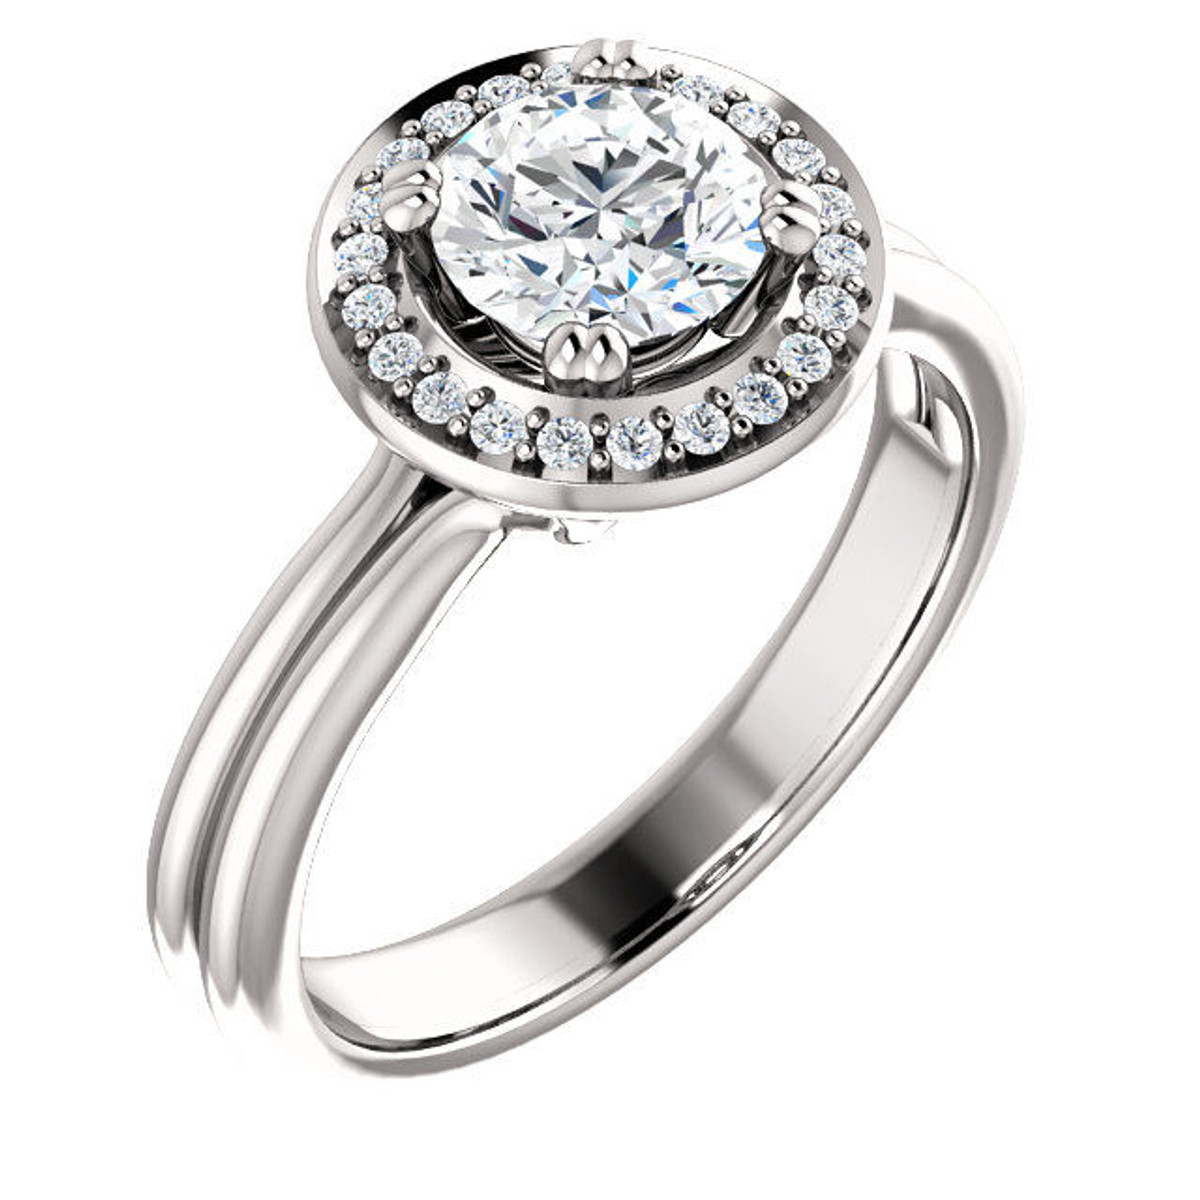 White Gold Round Cut Halo Engagement Ring